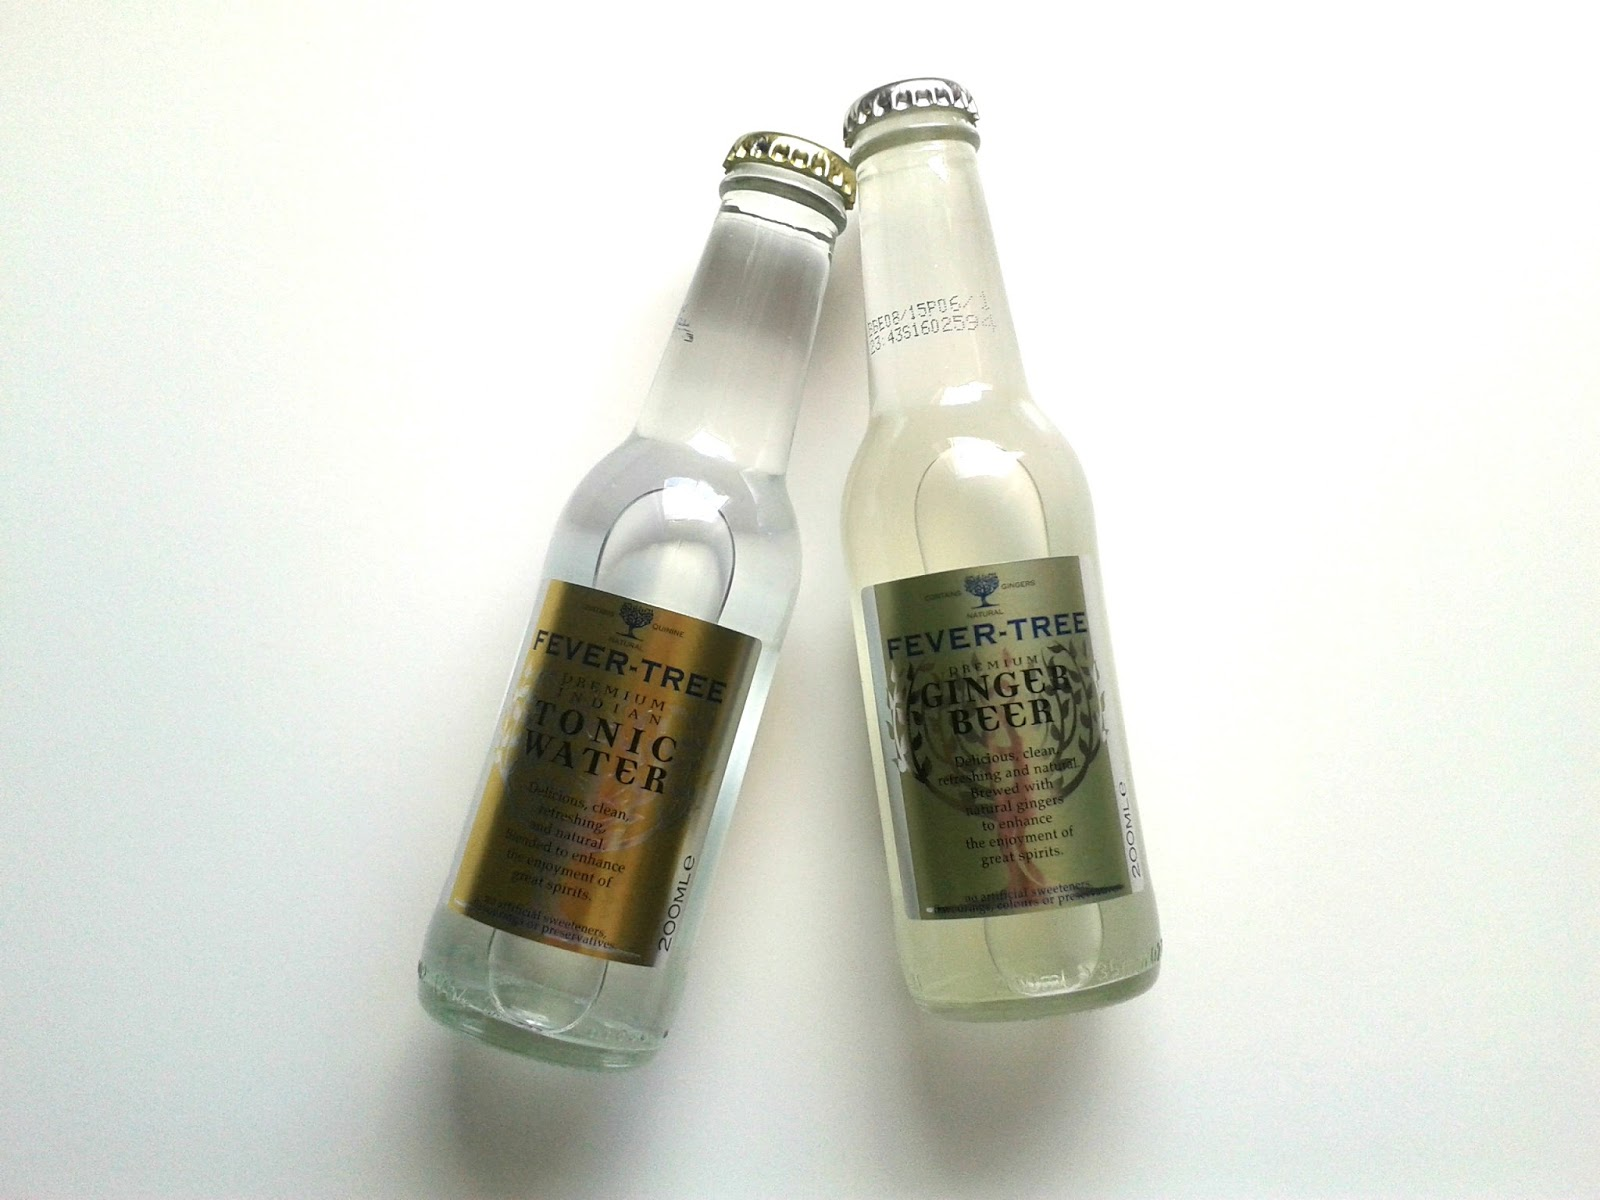 Fever Tree Tonic Water and Ginger Beer August Degustabox Review